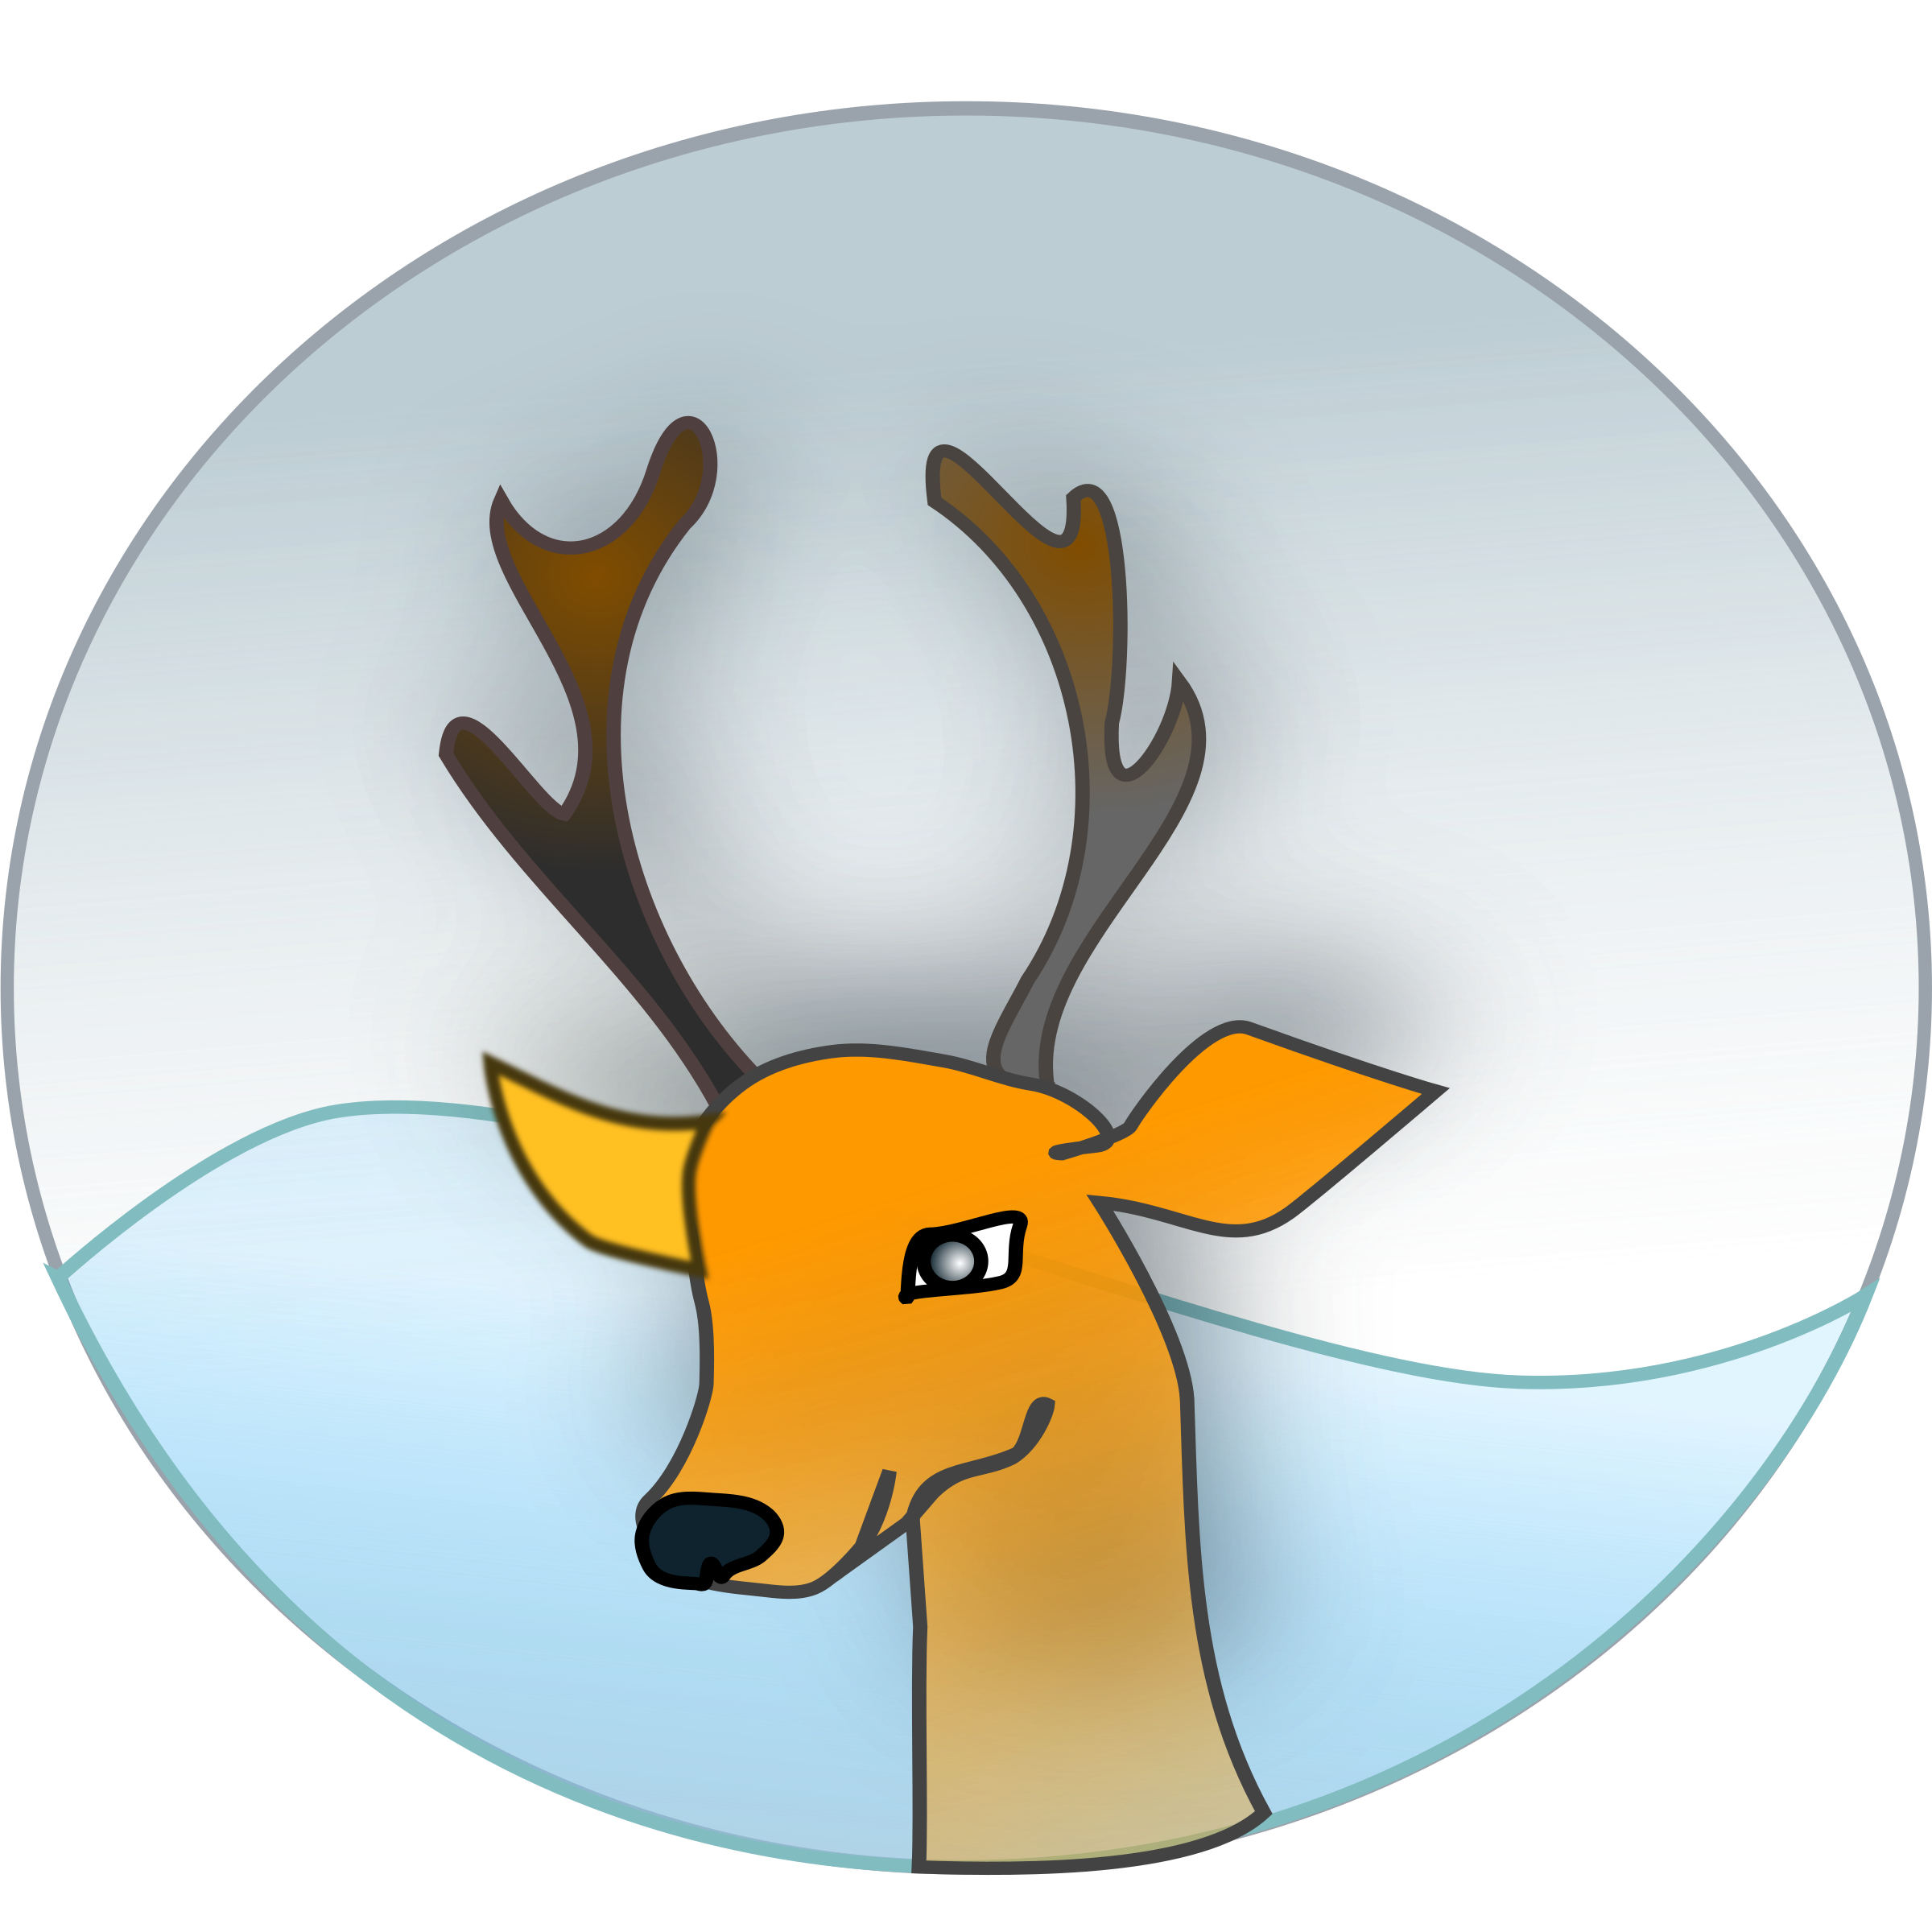 Antlers with flowers png. Deer antler clipart at